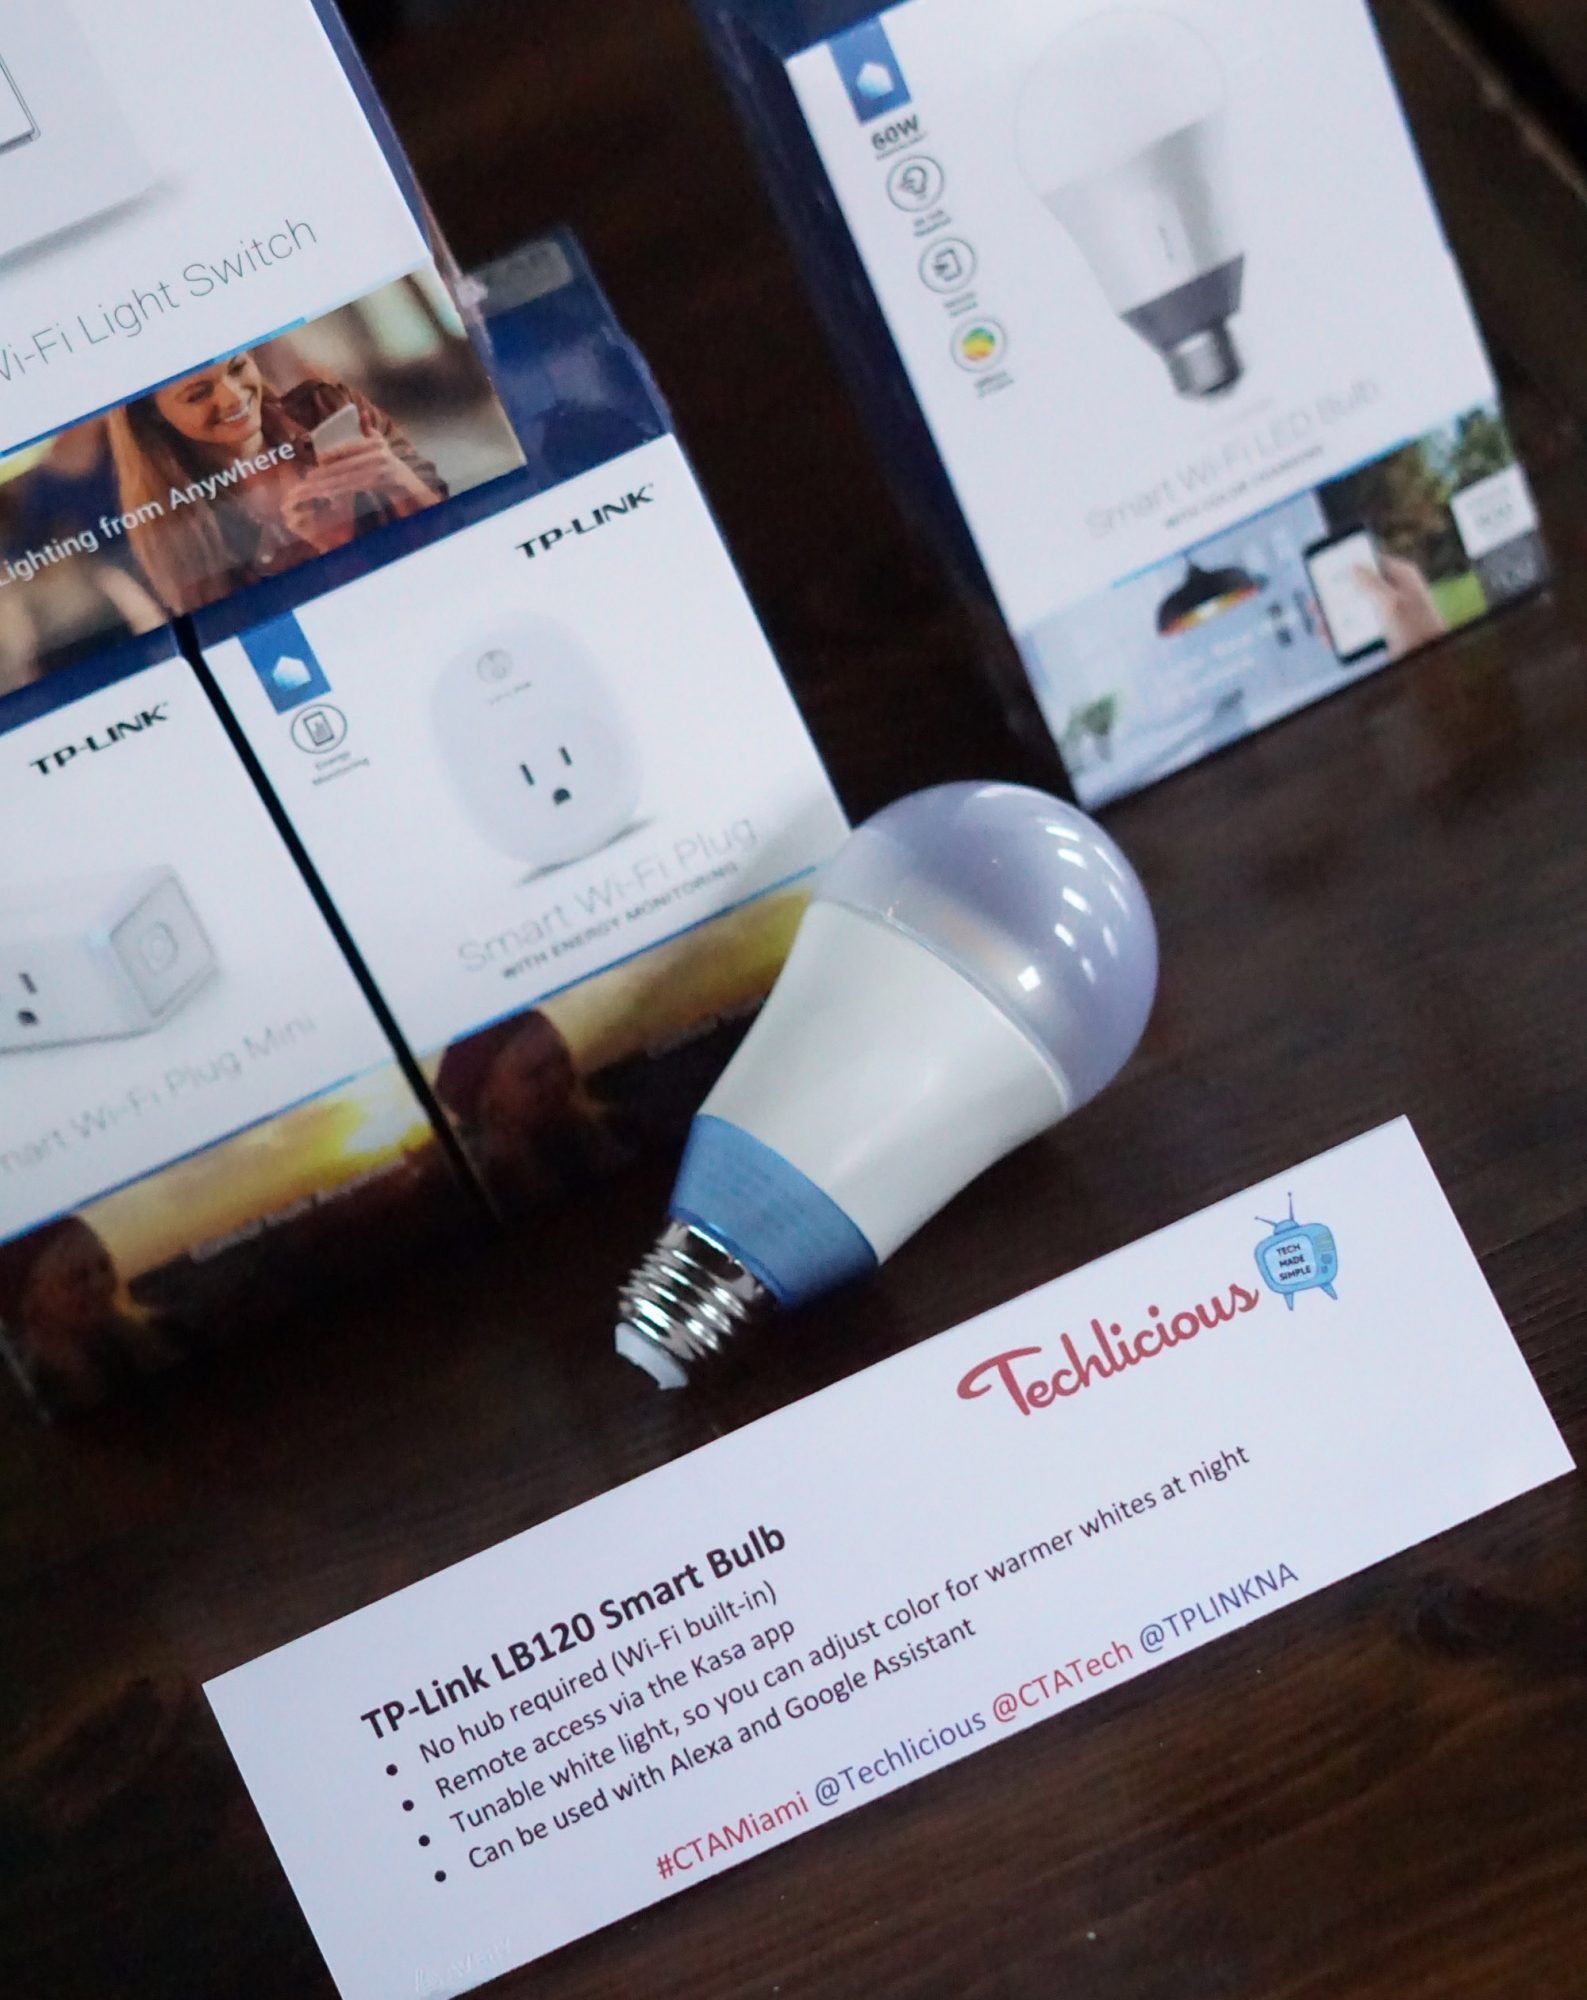 TP‑LINK LB120 Smart Wi‑Fi LED Bulb with Tunable White Light